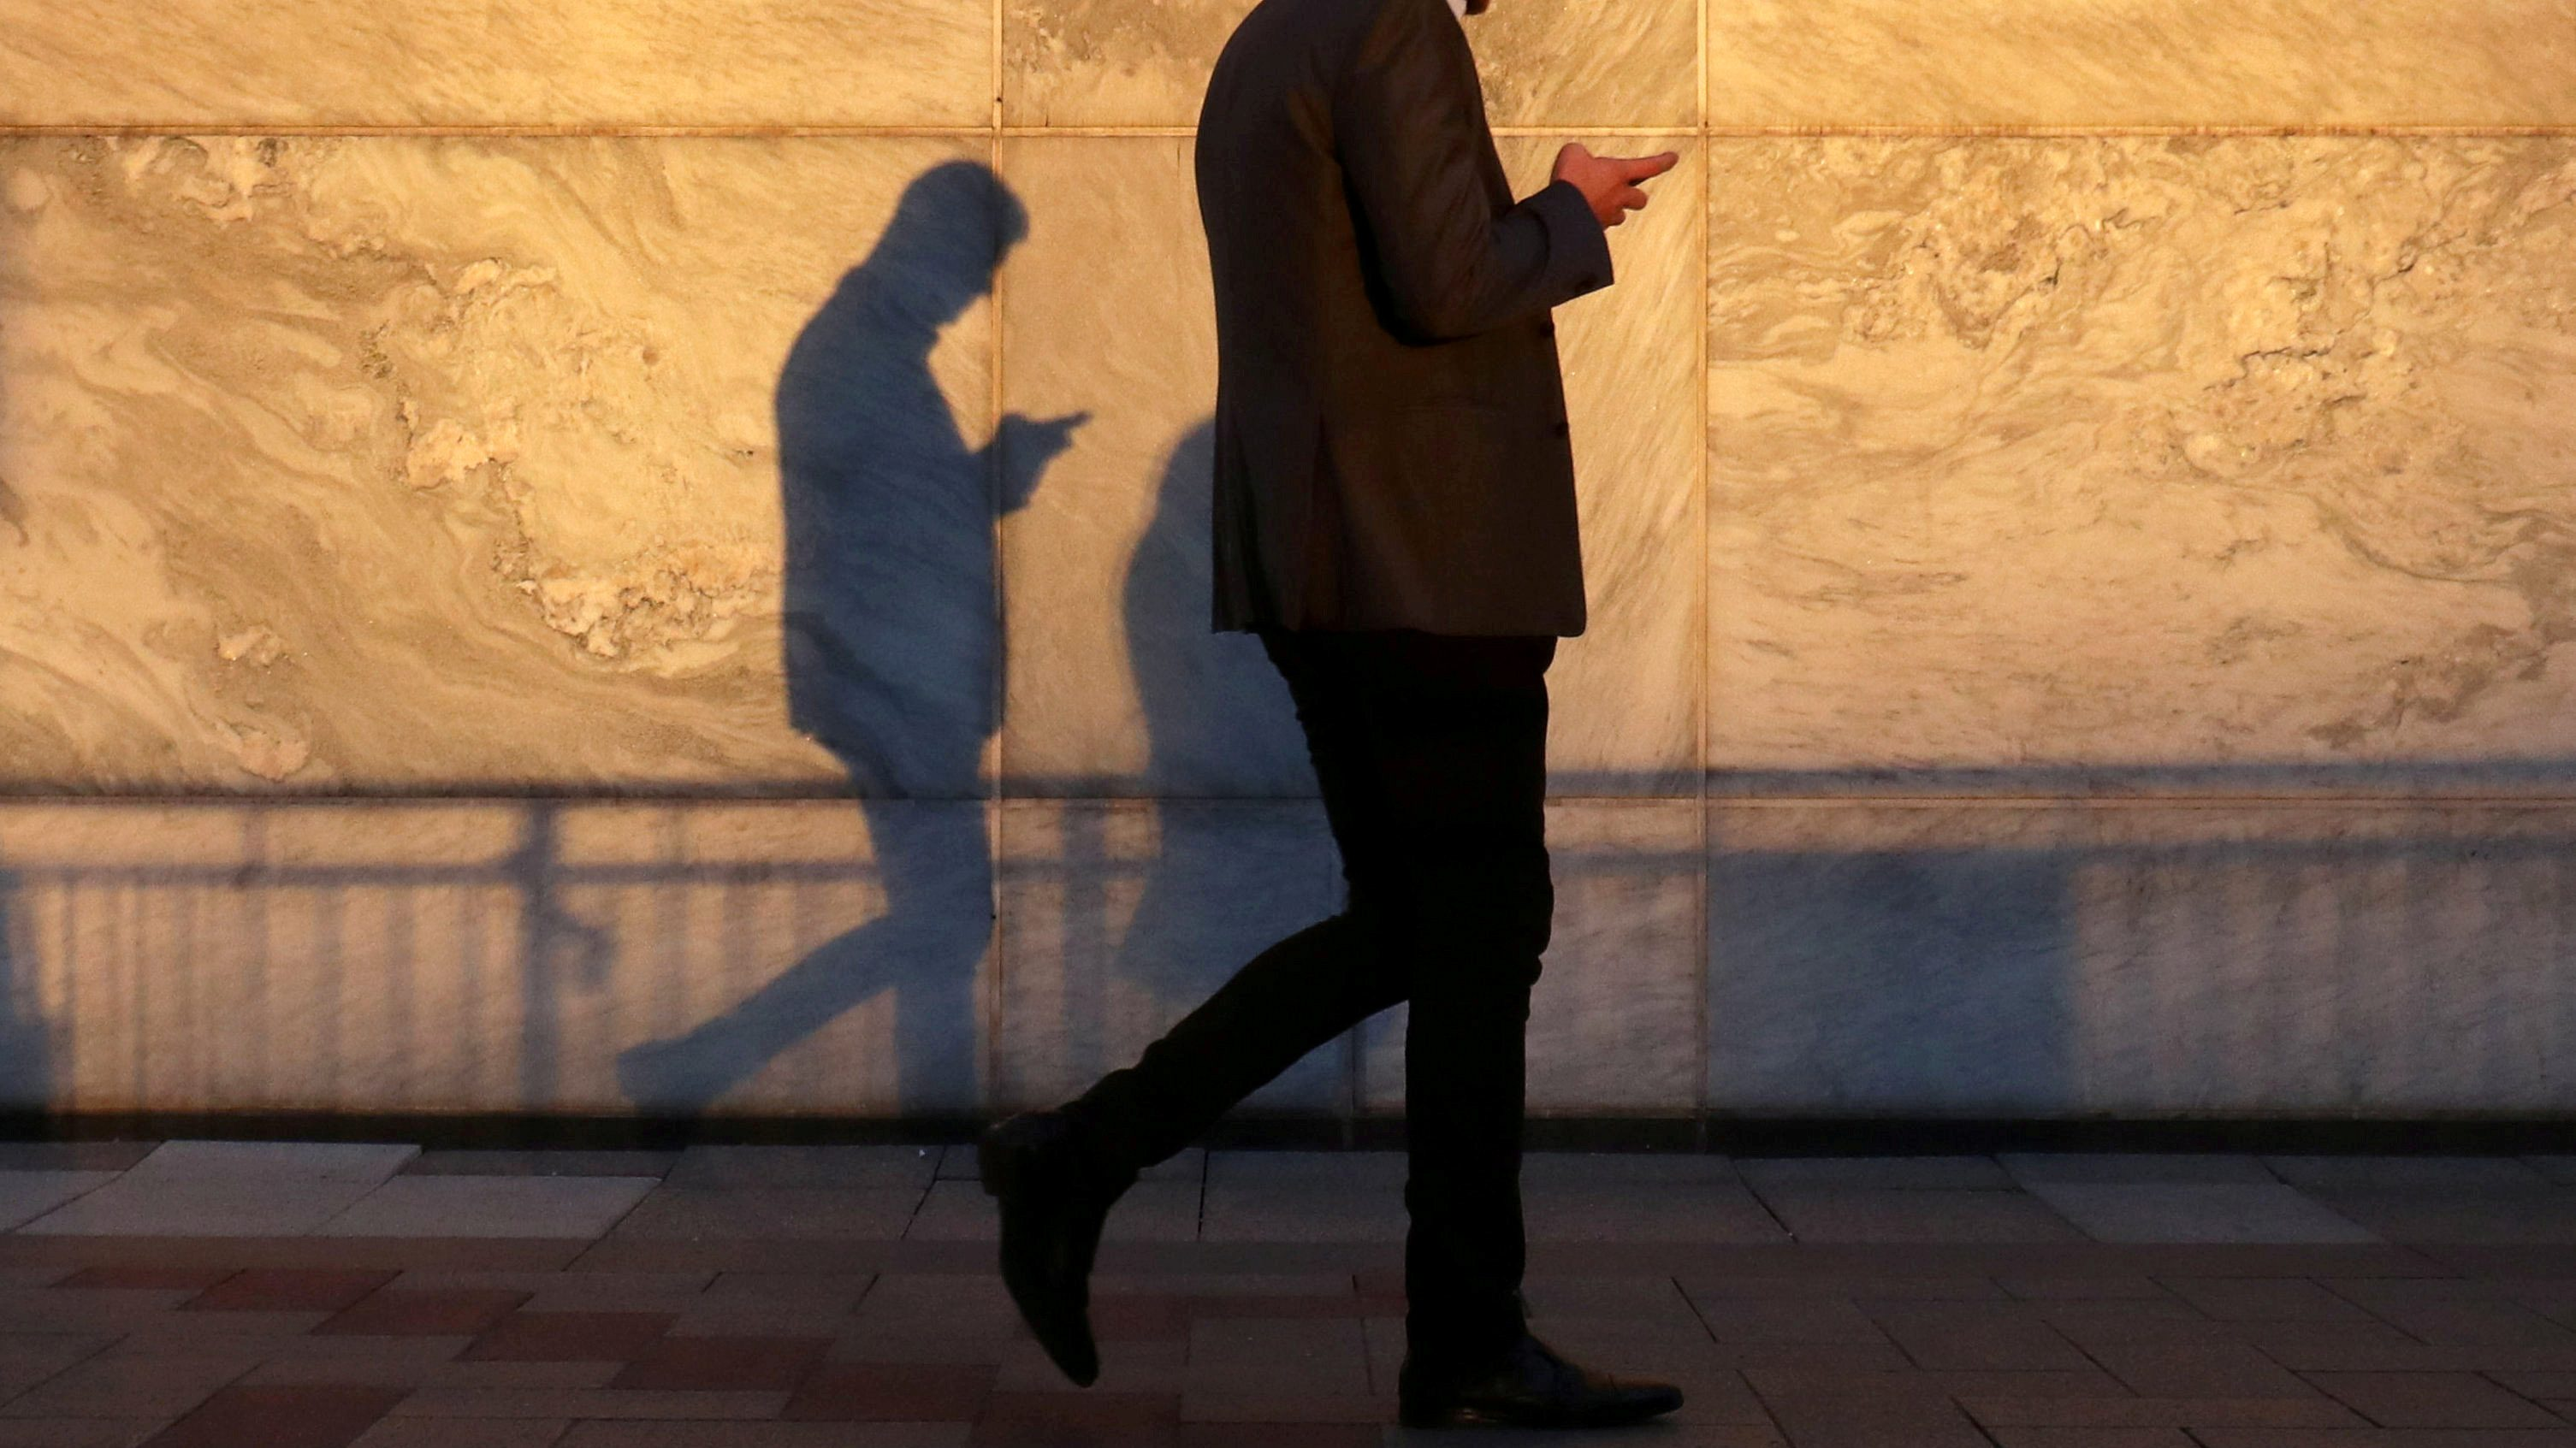 A man's shadow is visible as he walks holding a smartphone and looking down.